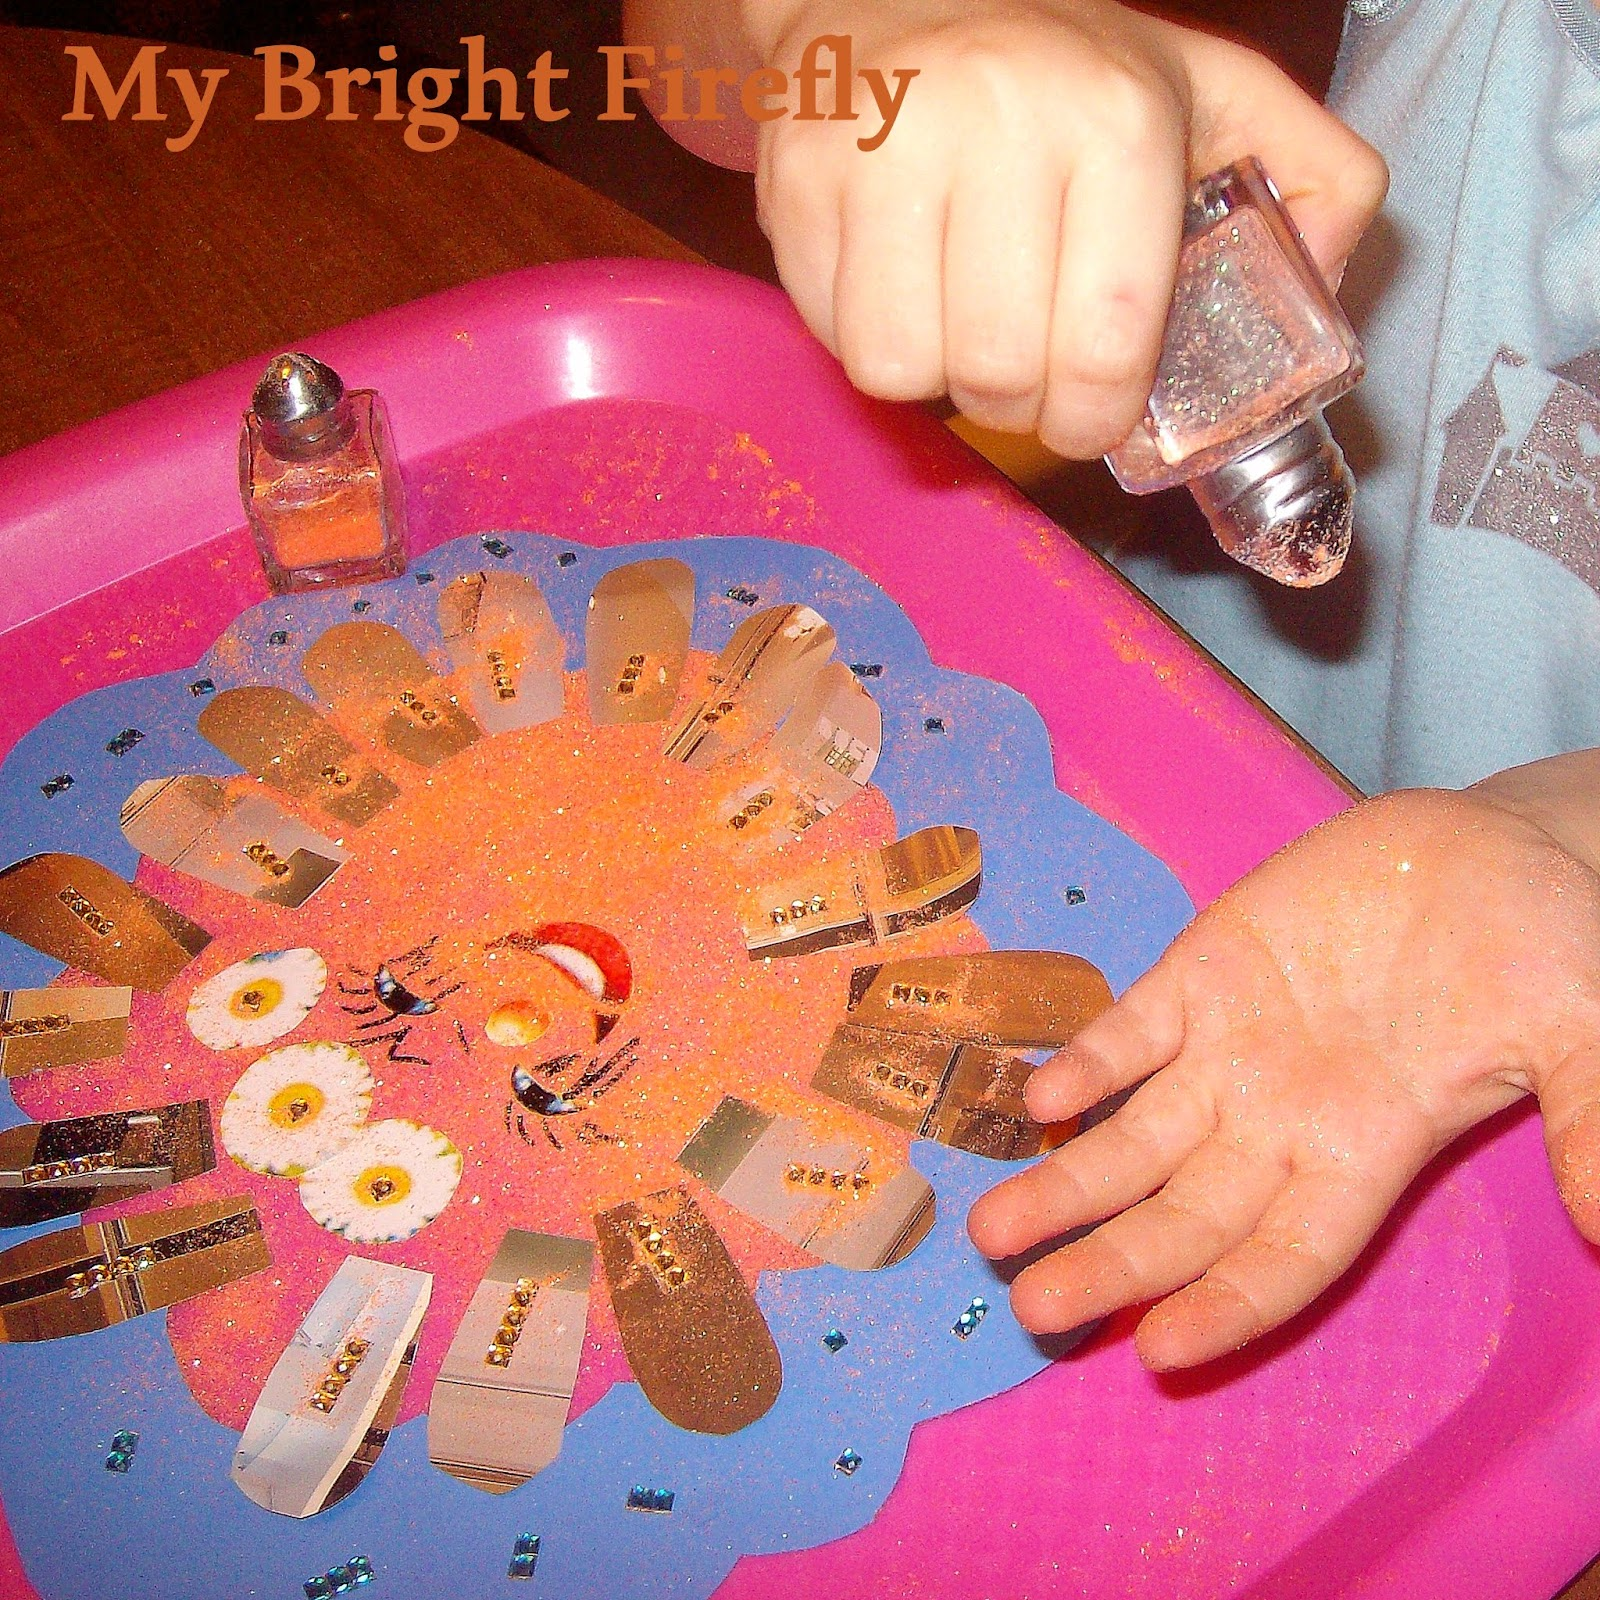 My Bright Firefly Sunshine And Rainbows Collage And Play